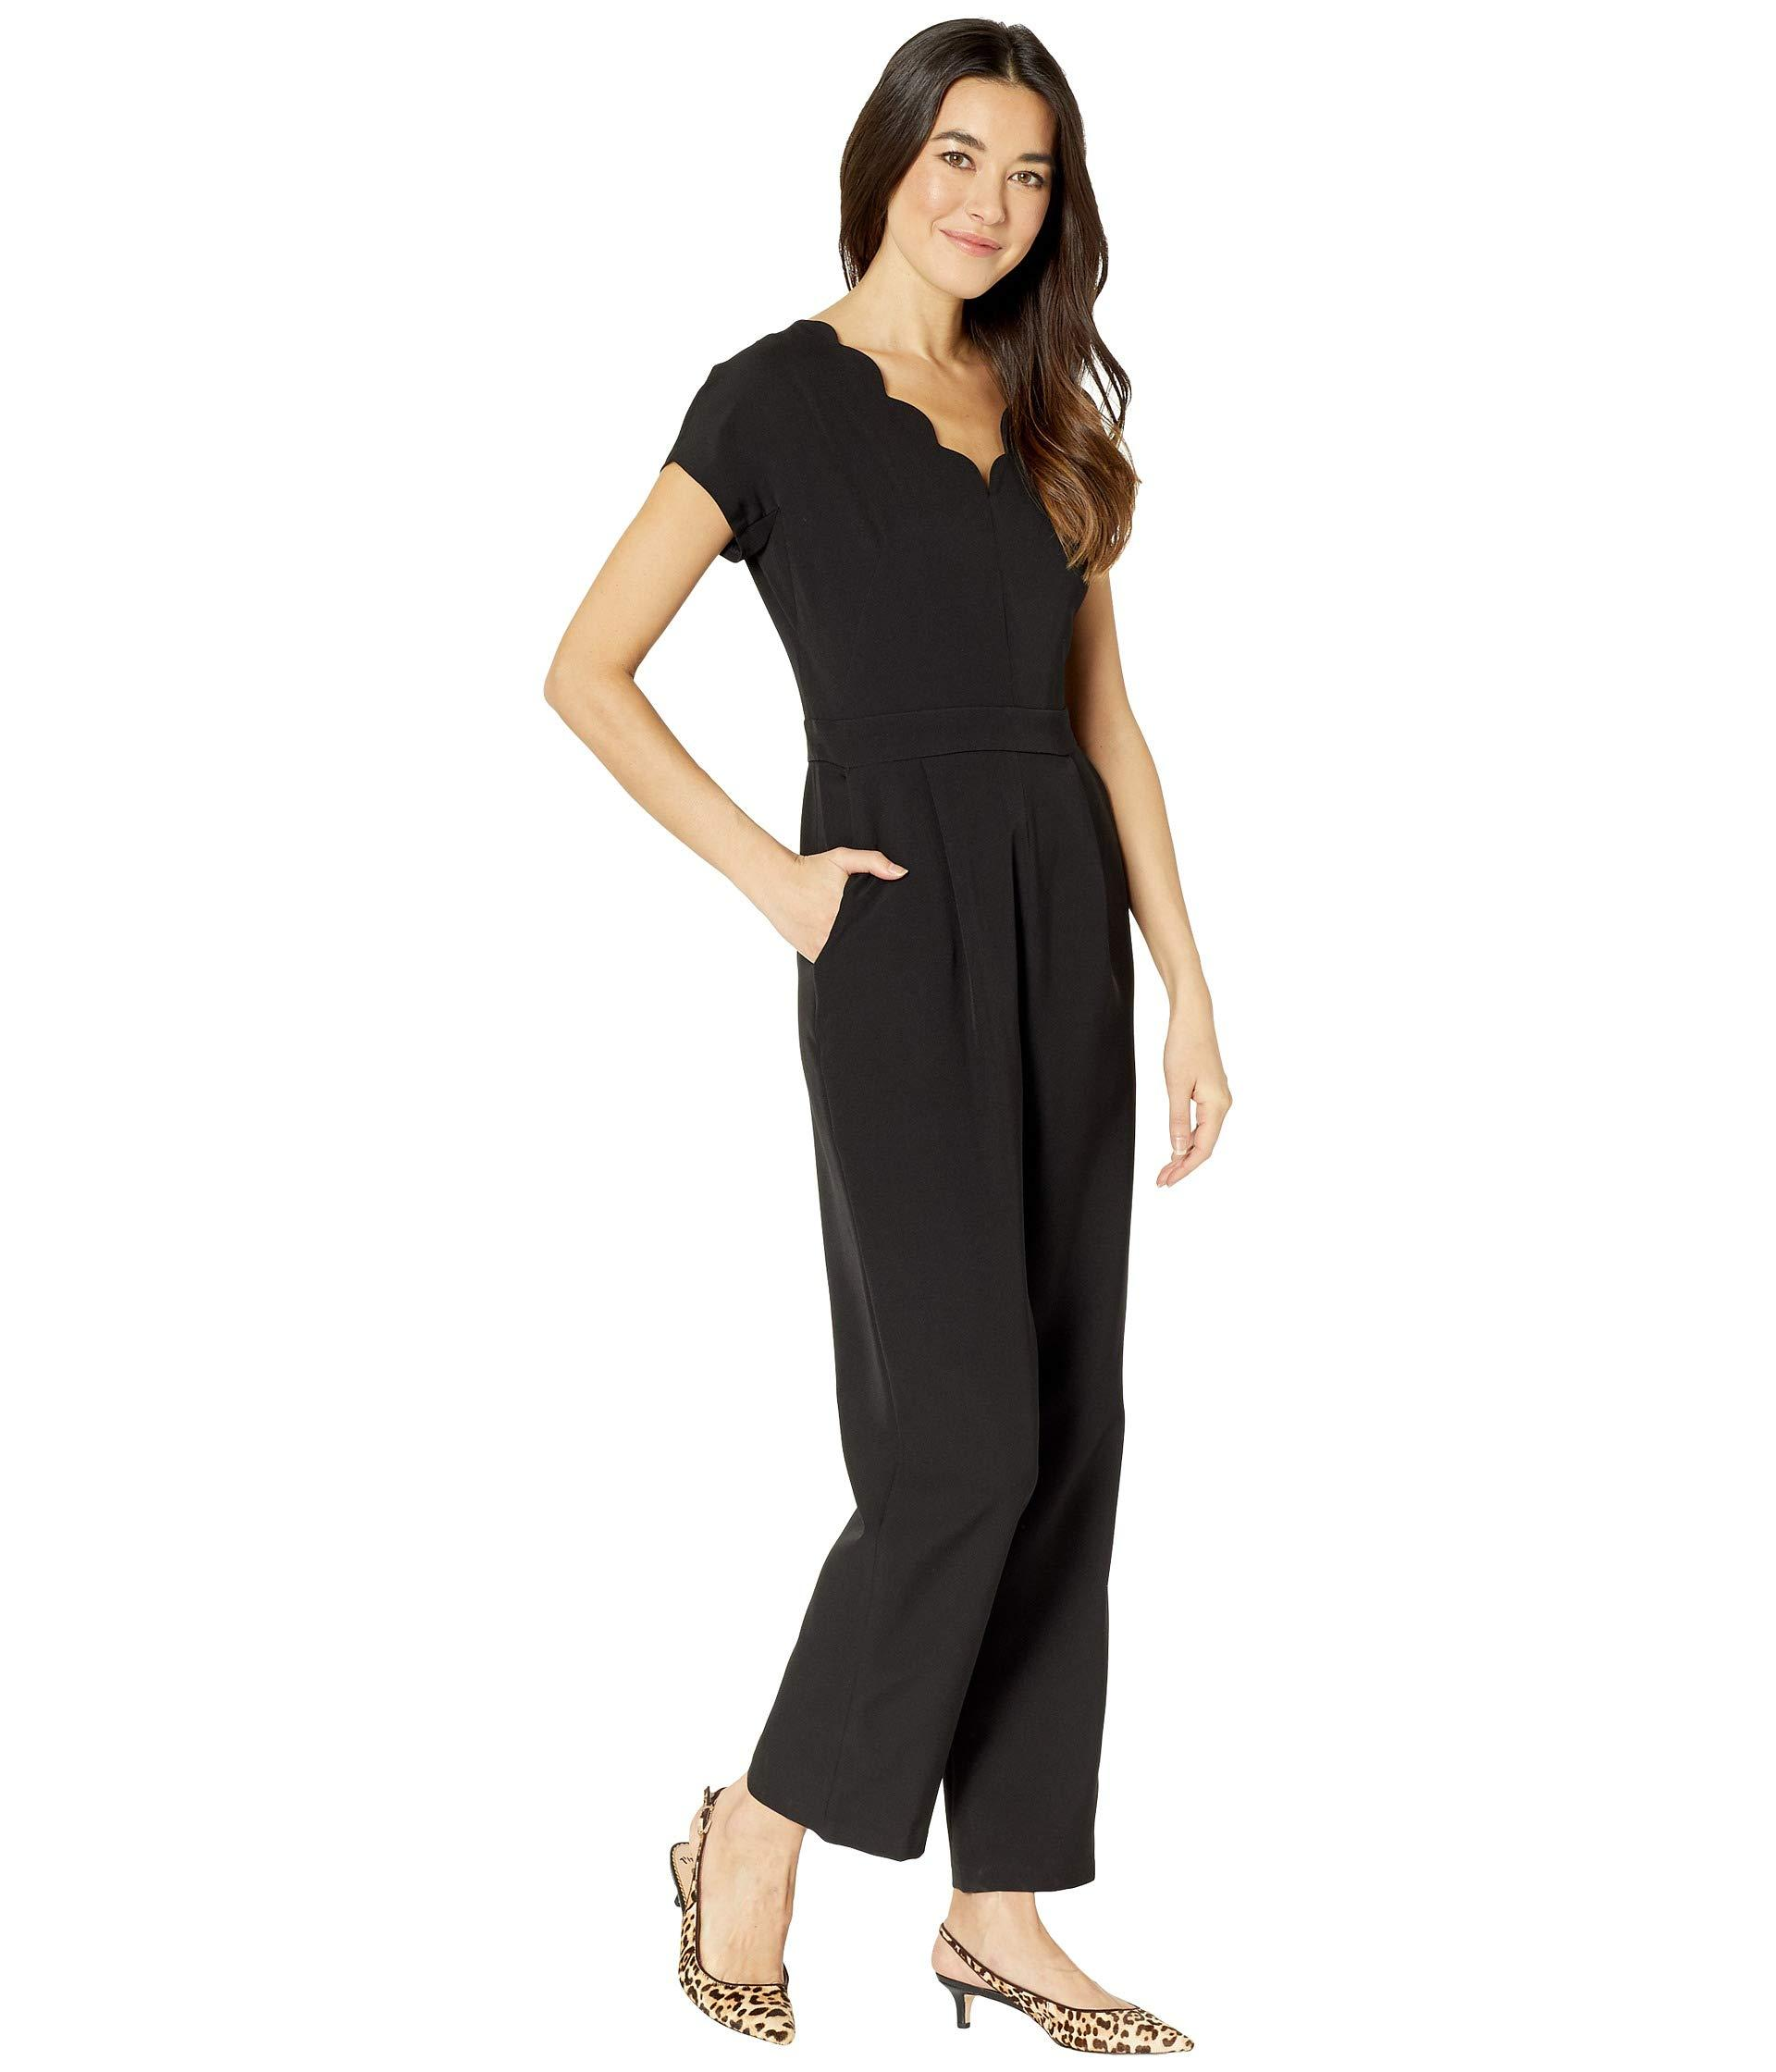 643af67bab63 Maggy London - Dream Crepe Scalloped Neck Jumpsuit (black) Women s Jumpsuit    Rompers One. View fullscreen